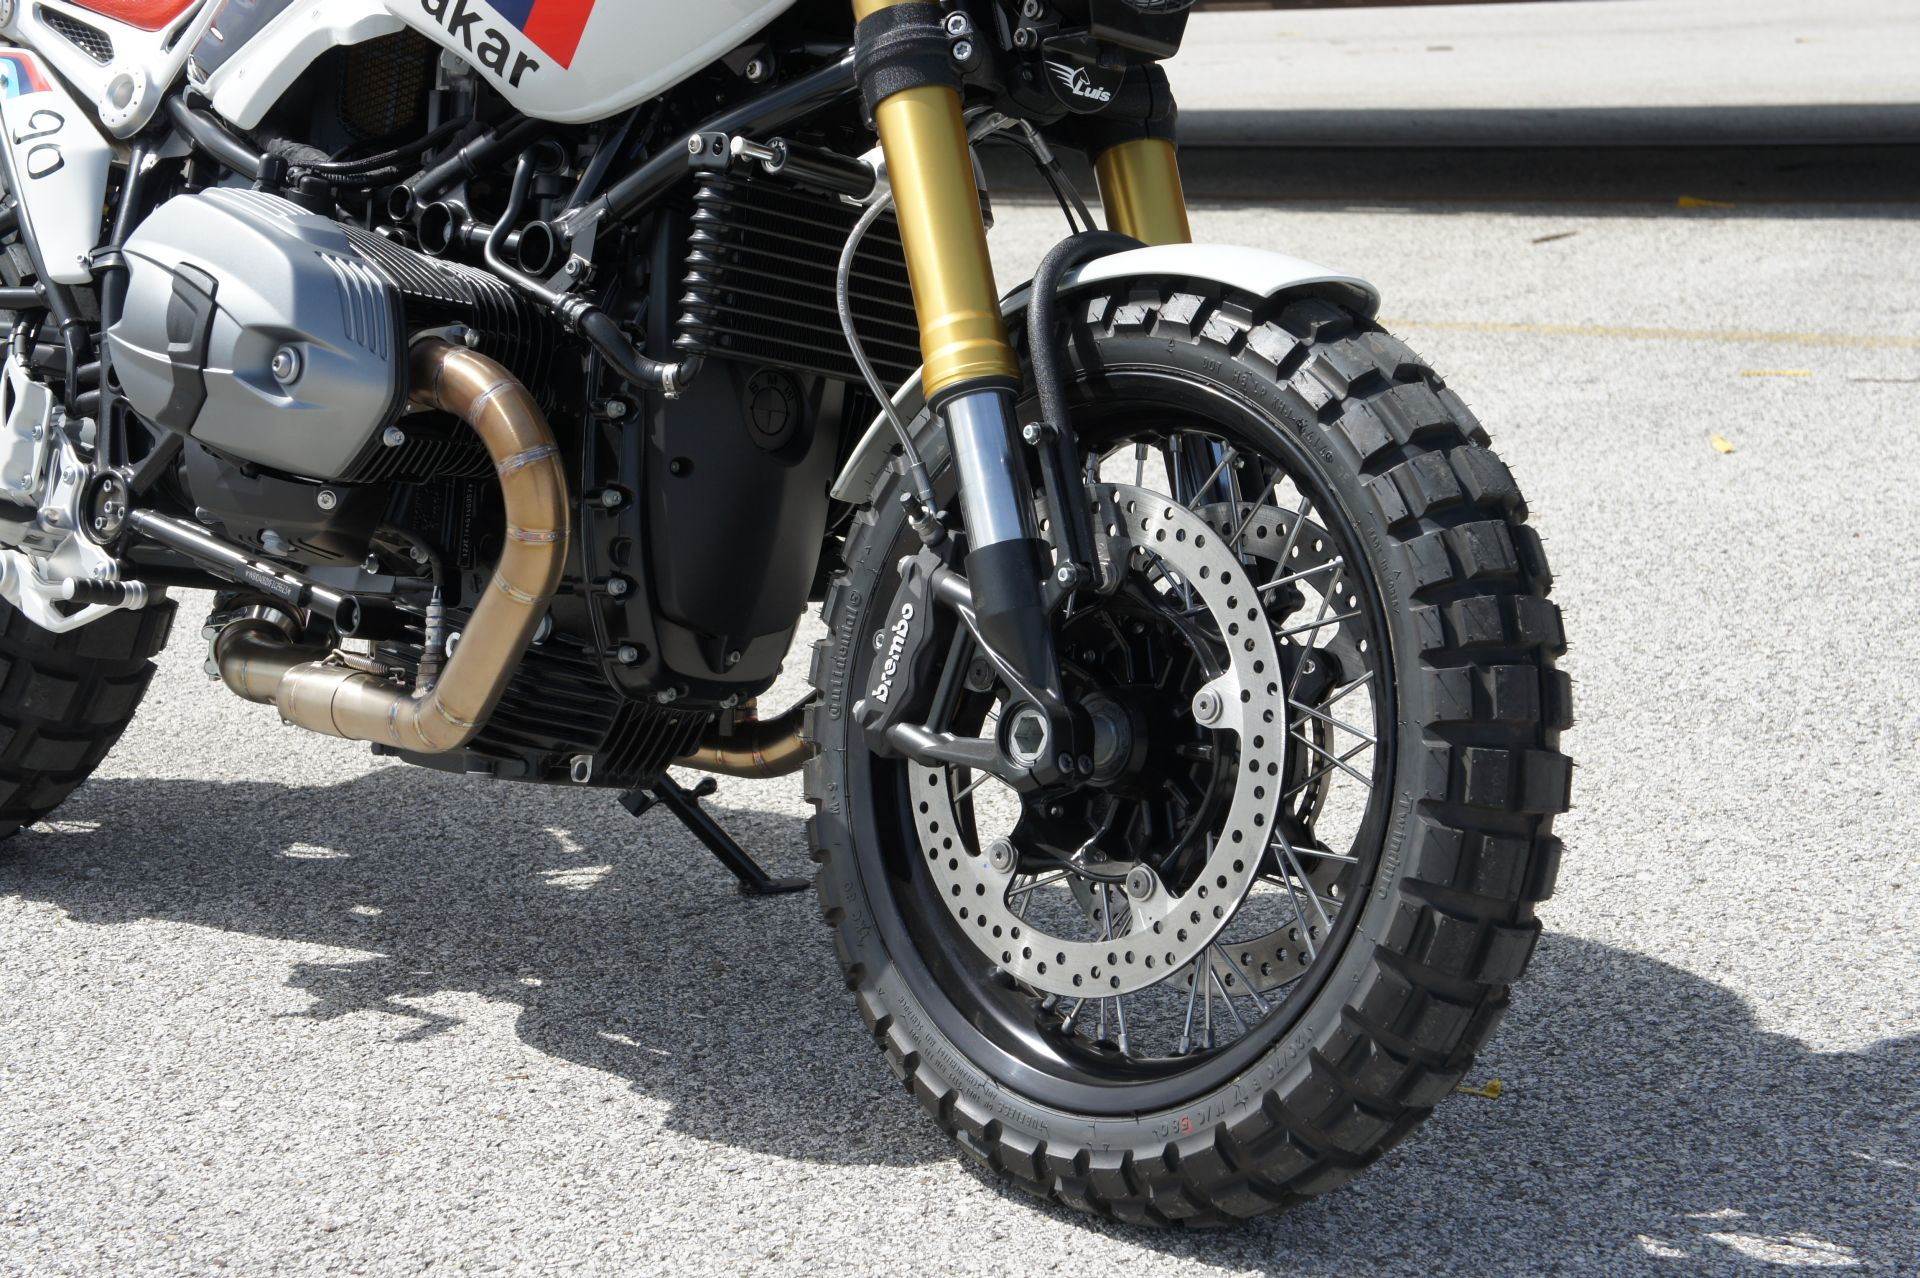 build-a-breathtaking-paris-dakar-bmw-r-ninet-with-the-luismoto-kit-photo-gallery_5 Extraordinary Bmw R 1200 R Nine T Cars Trend